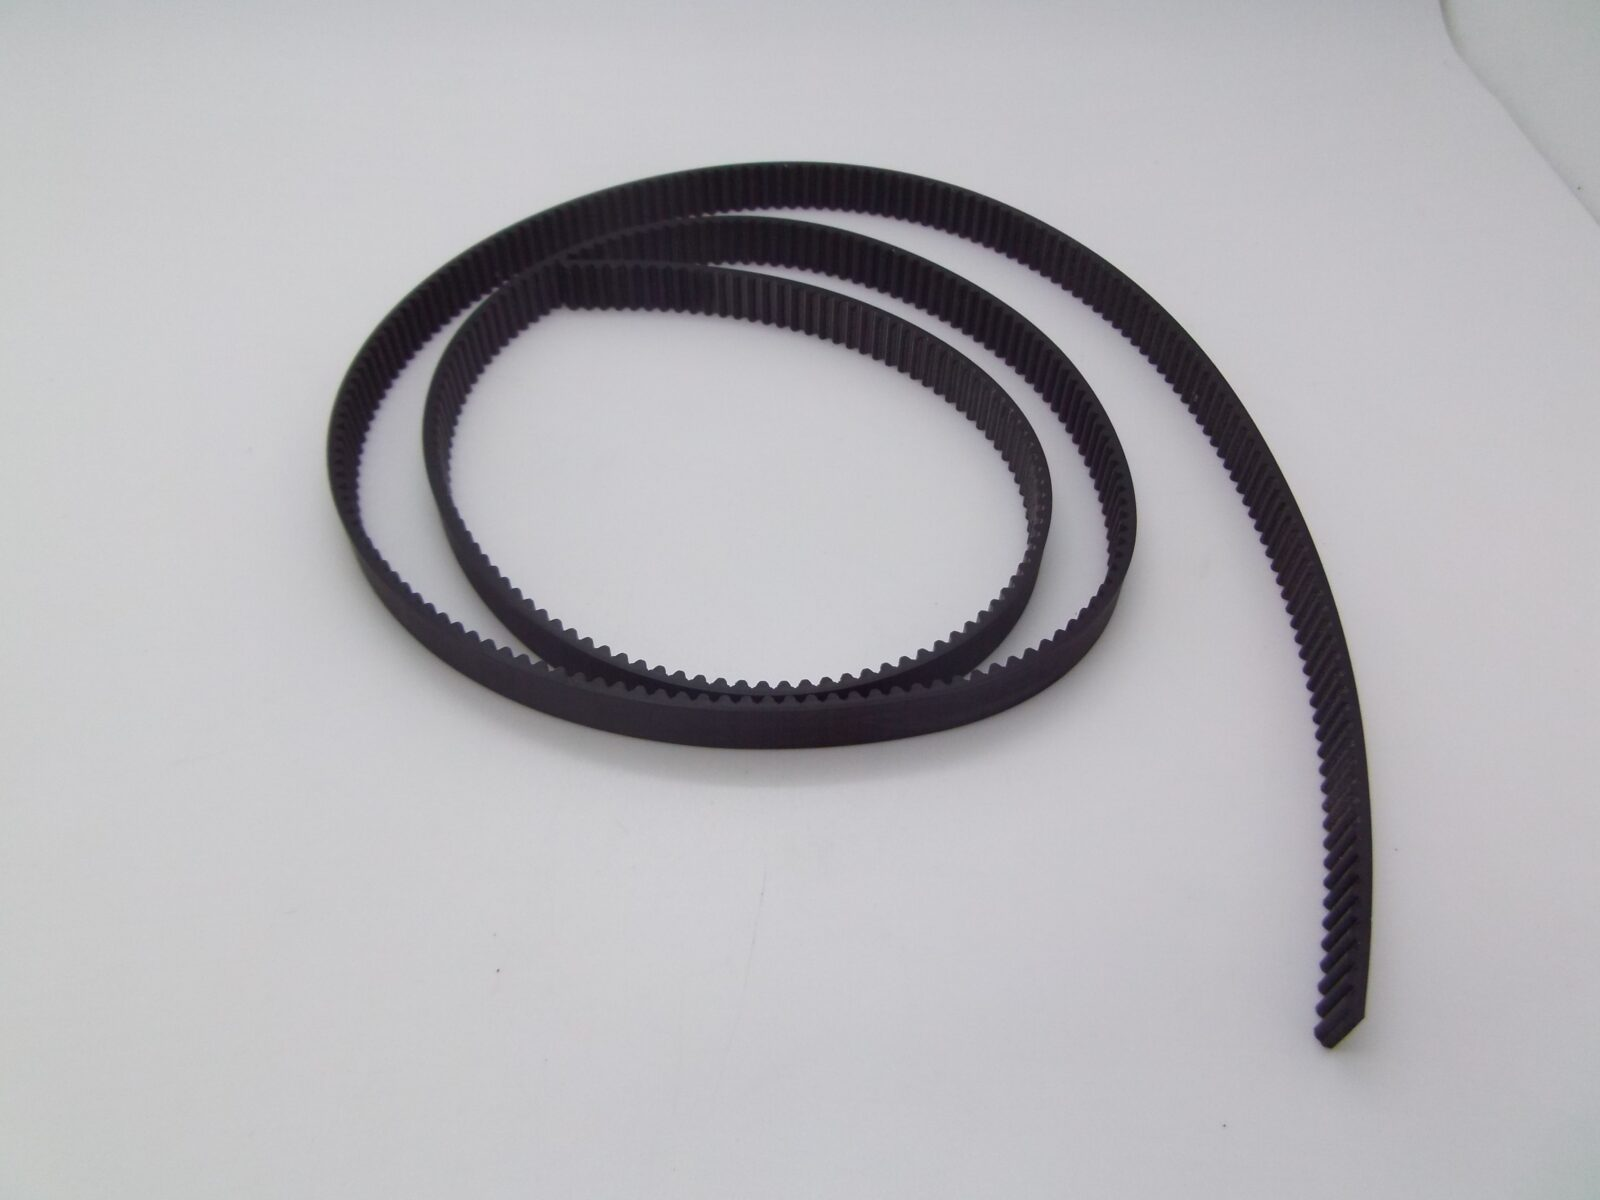 Toothed Drive Belt for Inklines HDM: C5.196.0141